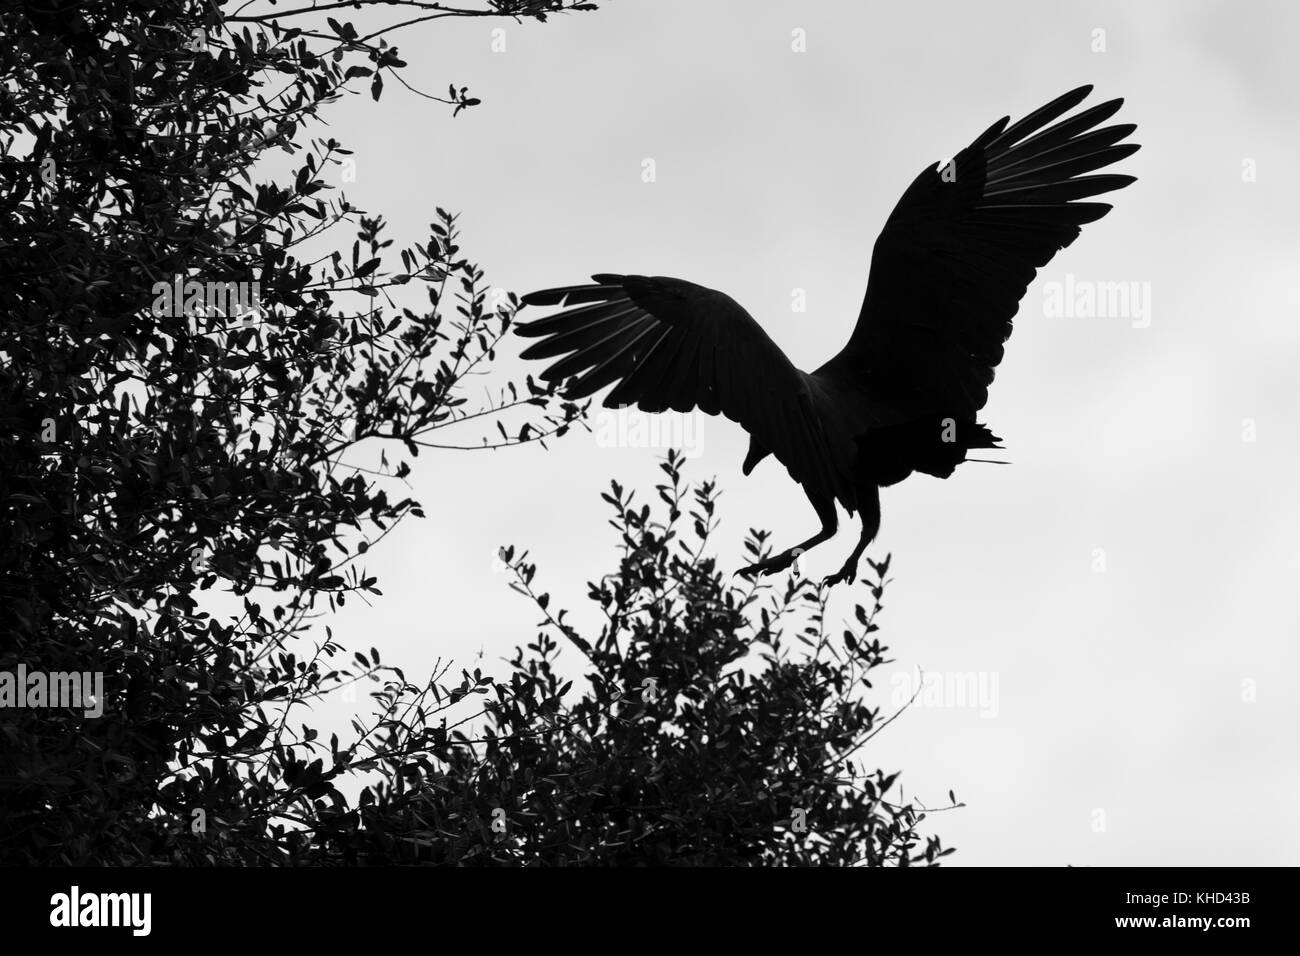 Silhouette of vulture landing in tree stock image